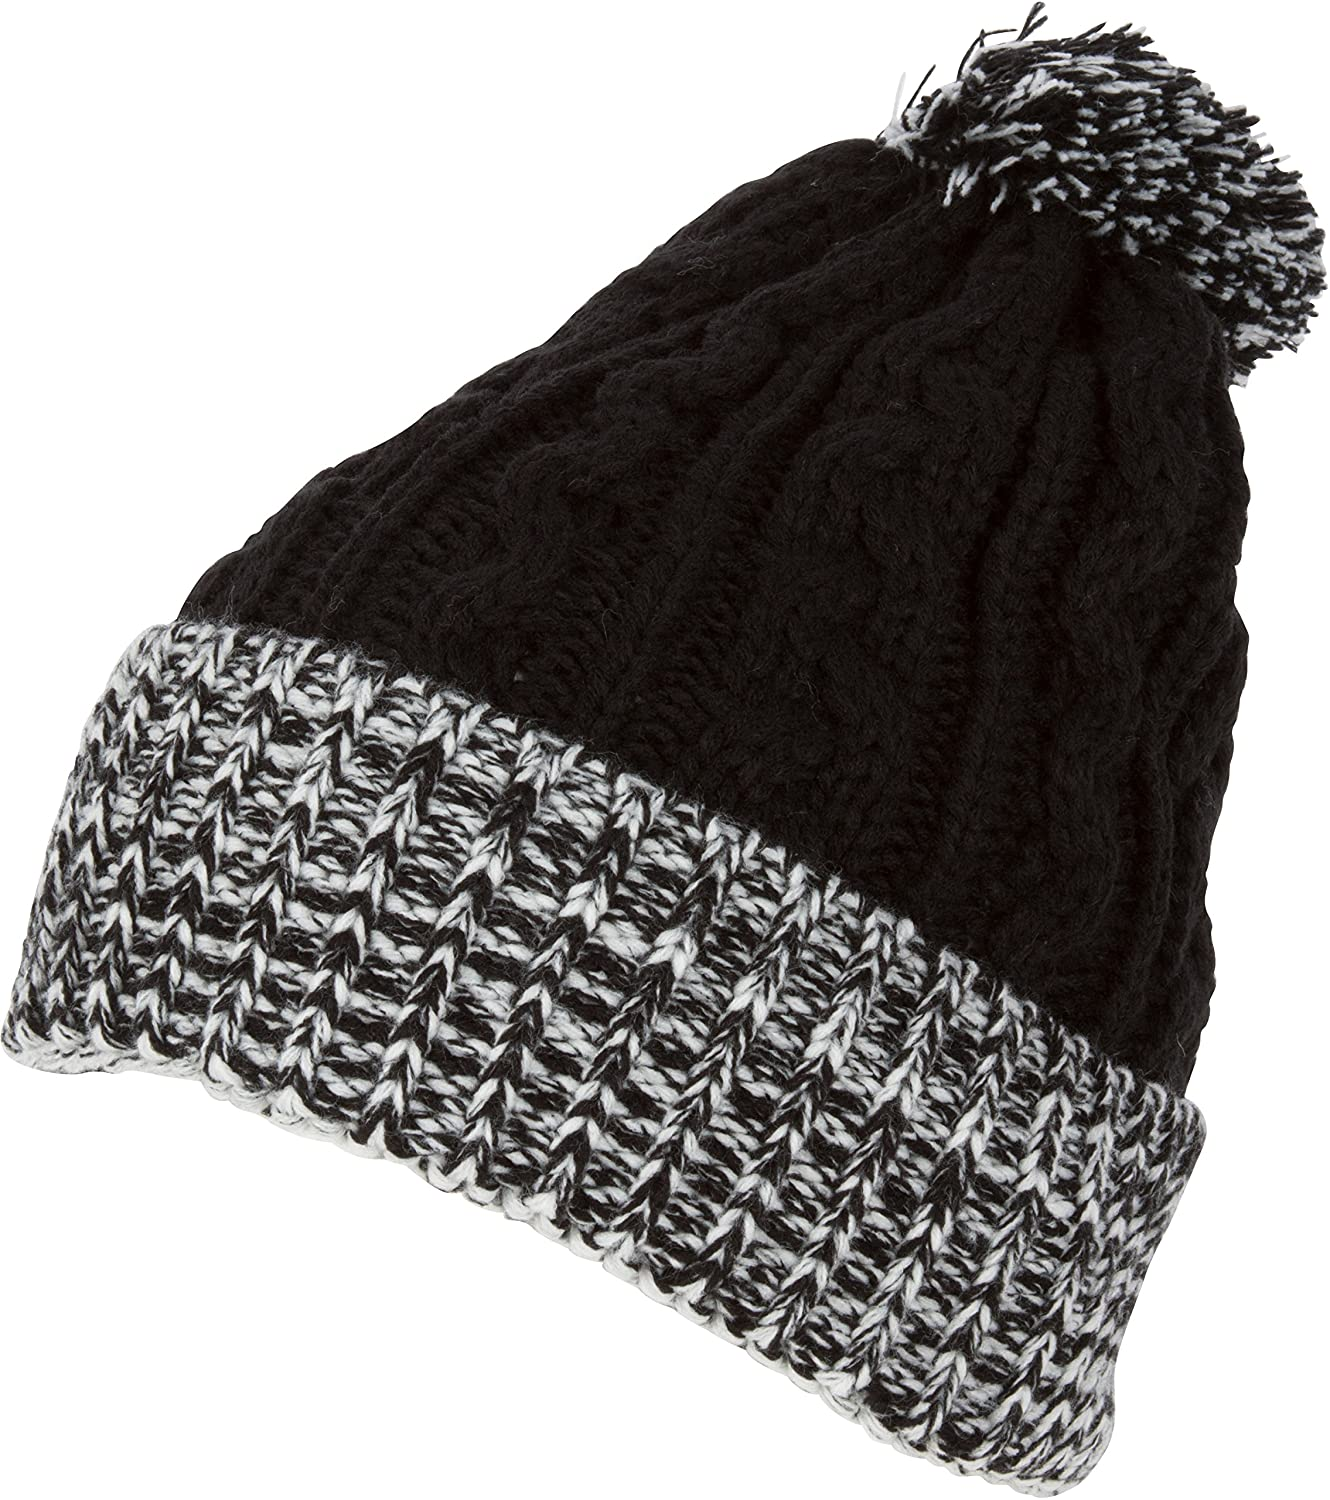 Sakkas CADK1516 - Effie Unisex Heather Multi Colored Pom Pom Knit Beanie Hat  - Black - OS at Amazon Women s Clothing store  5accda723be